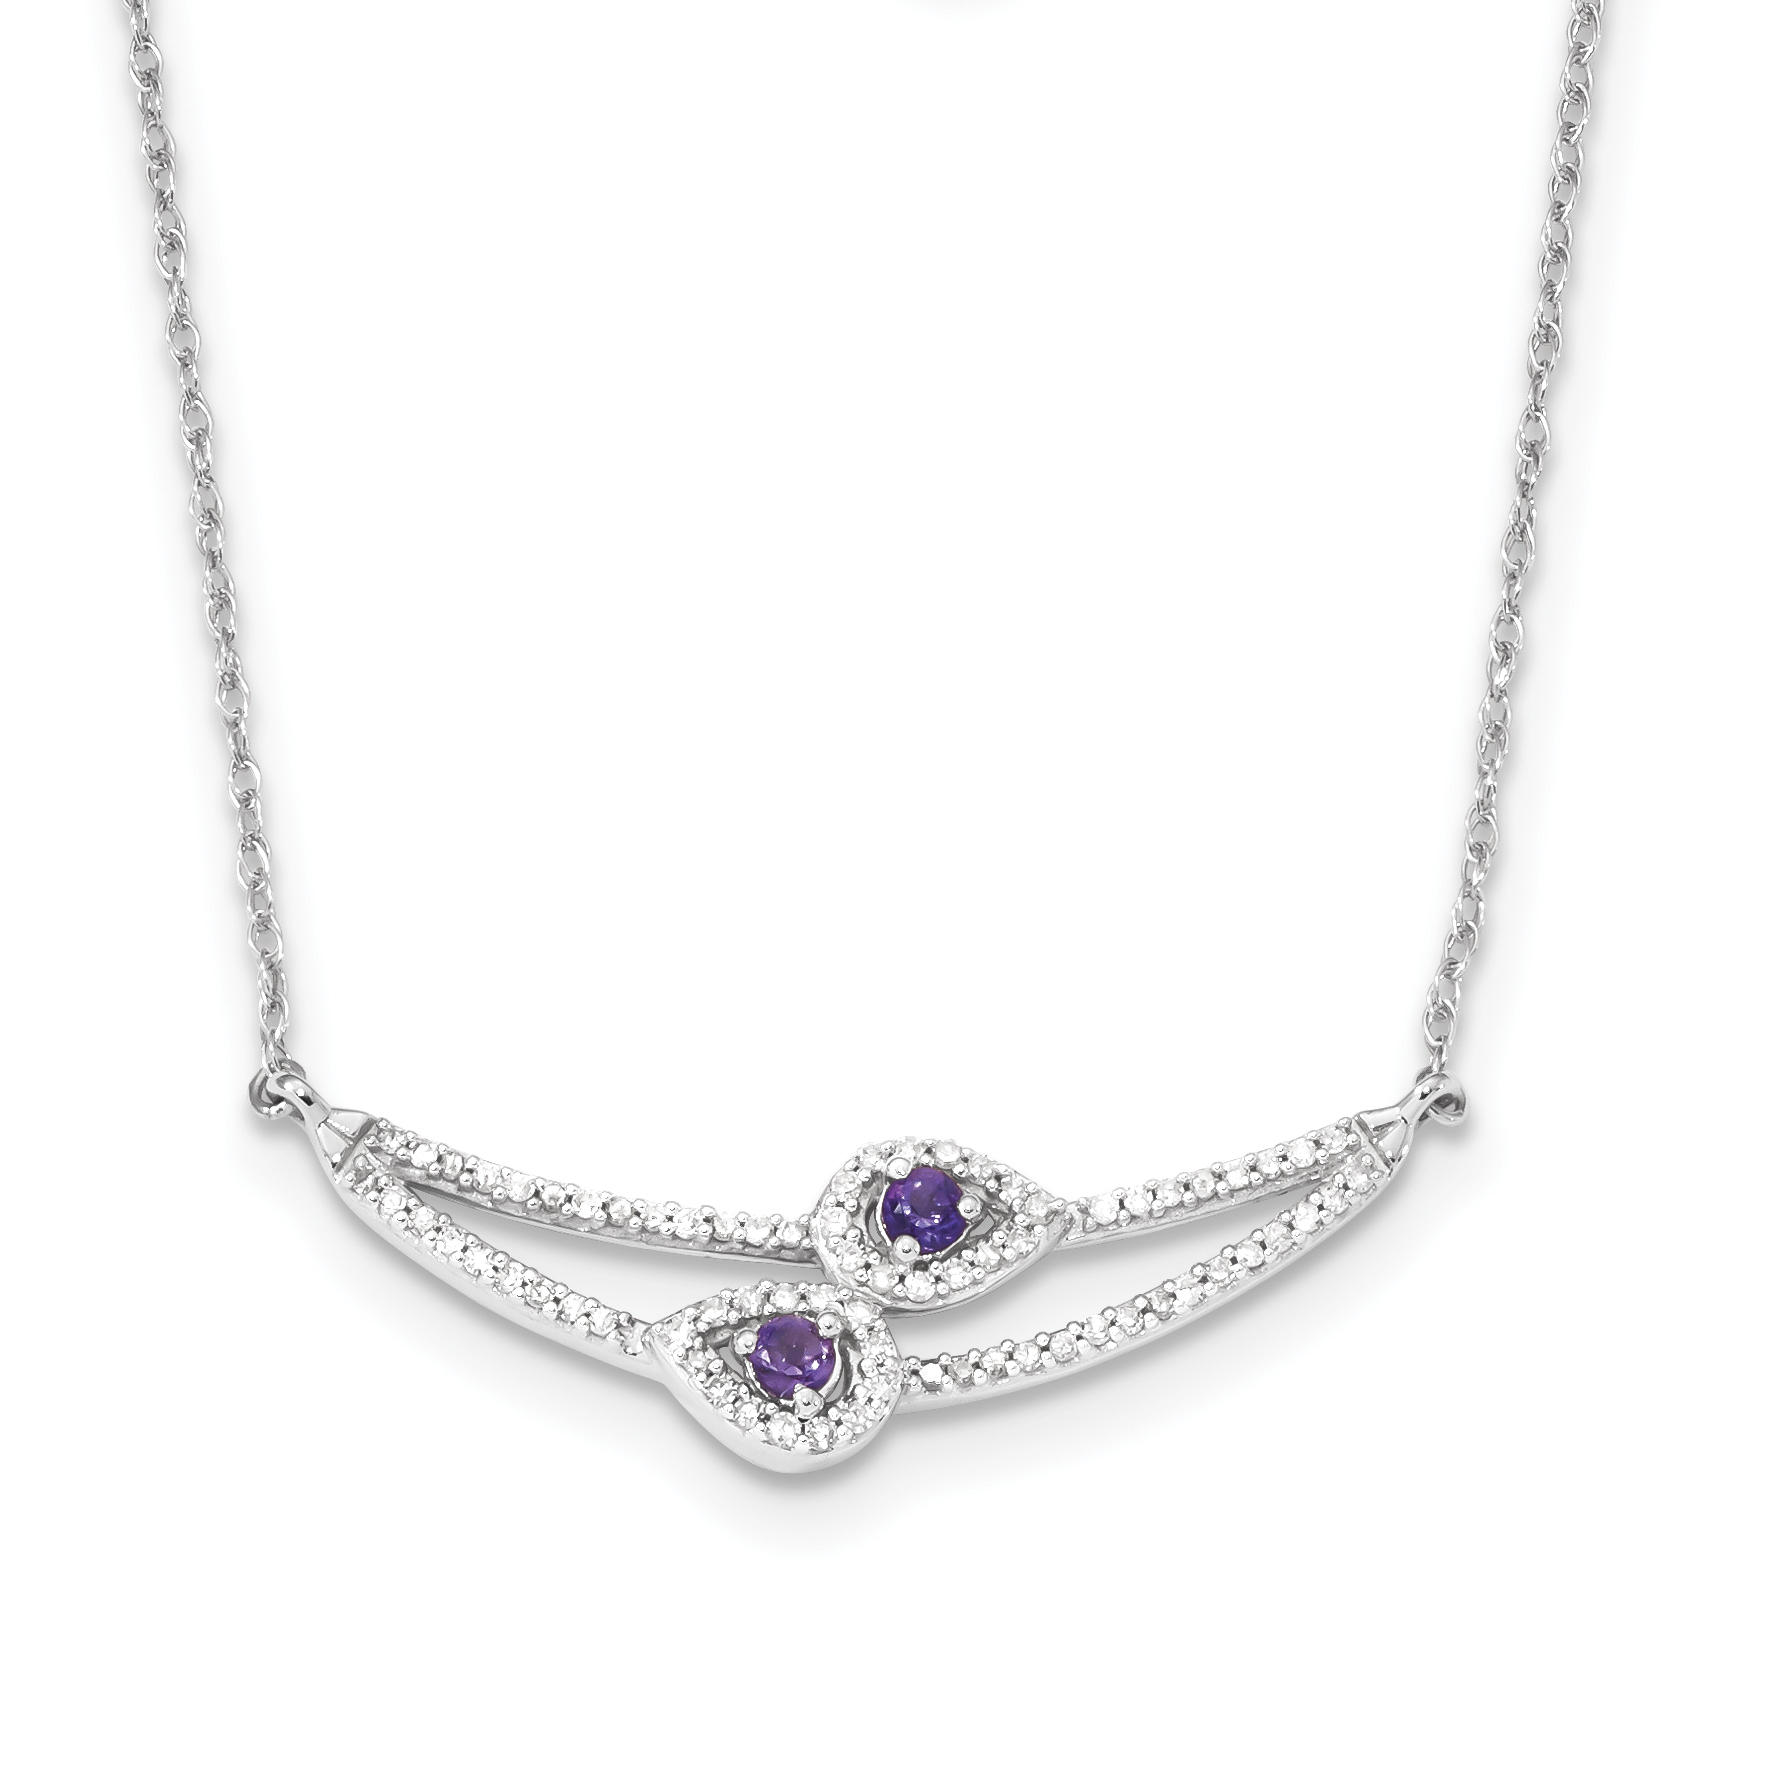 14k White Gold Diamond & Amethyst Necklace by Core Gold